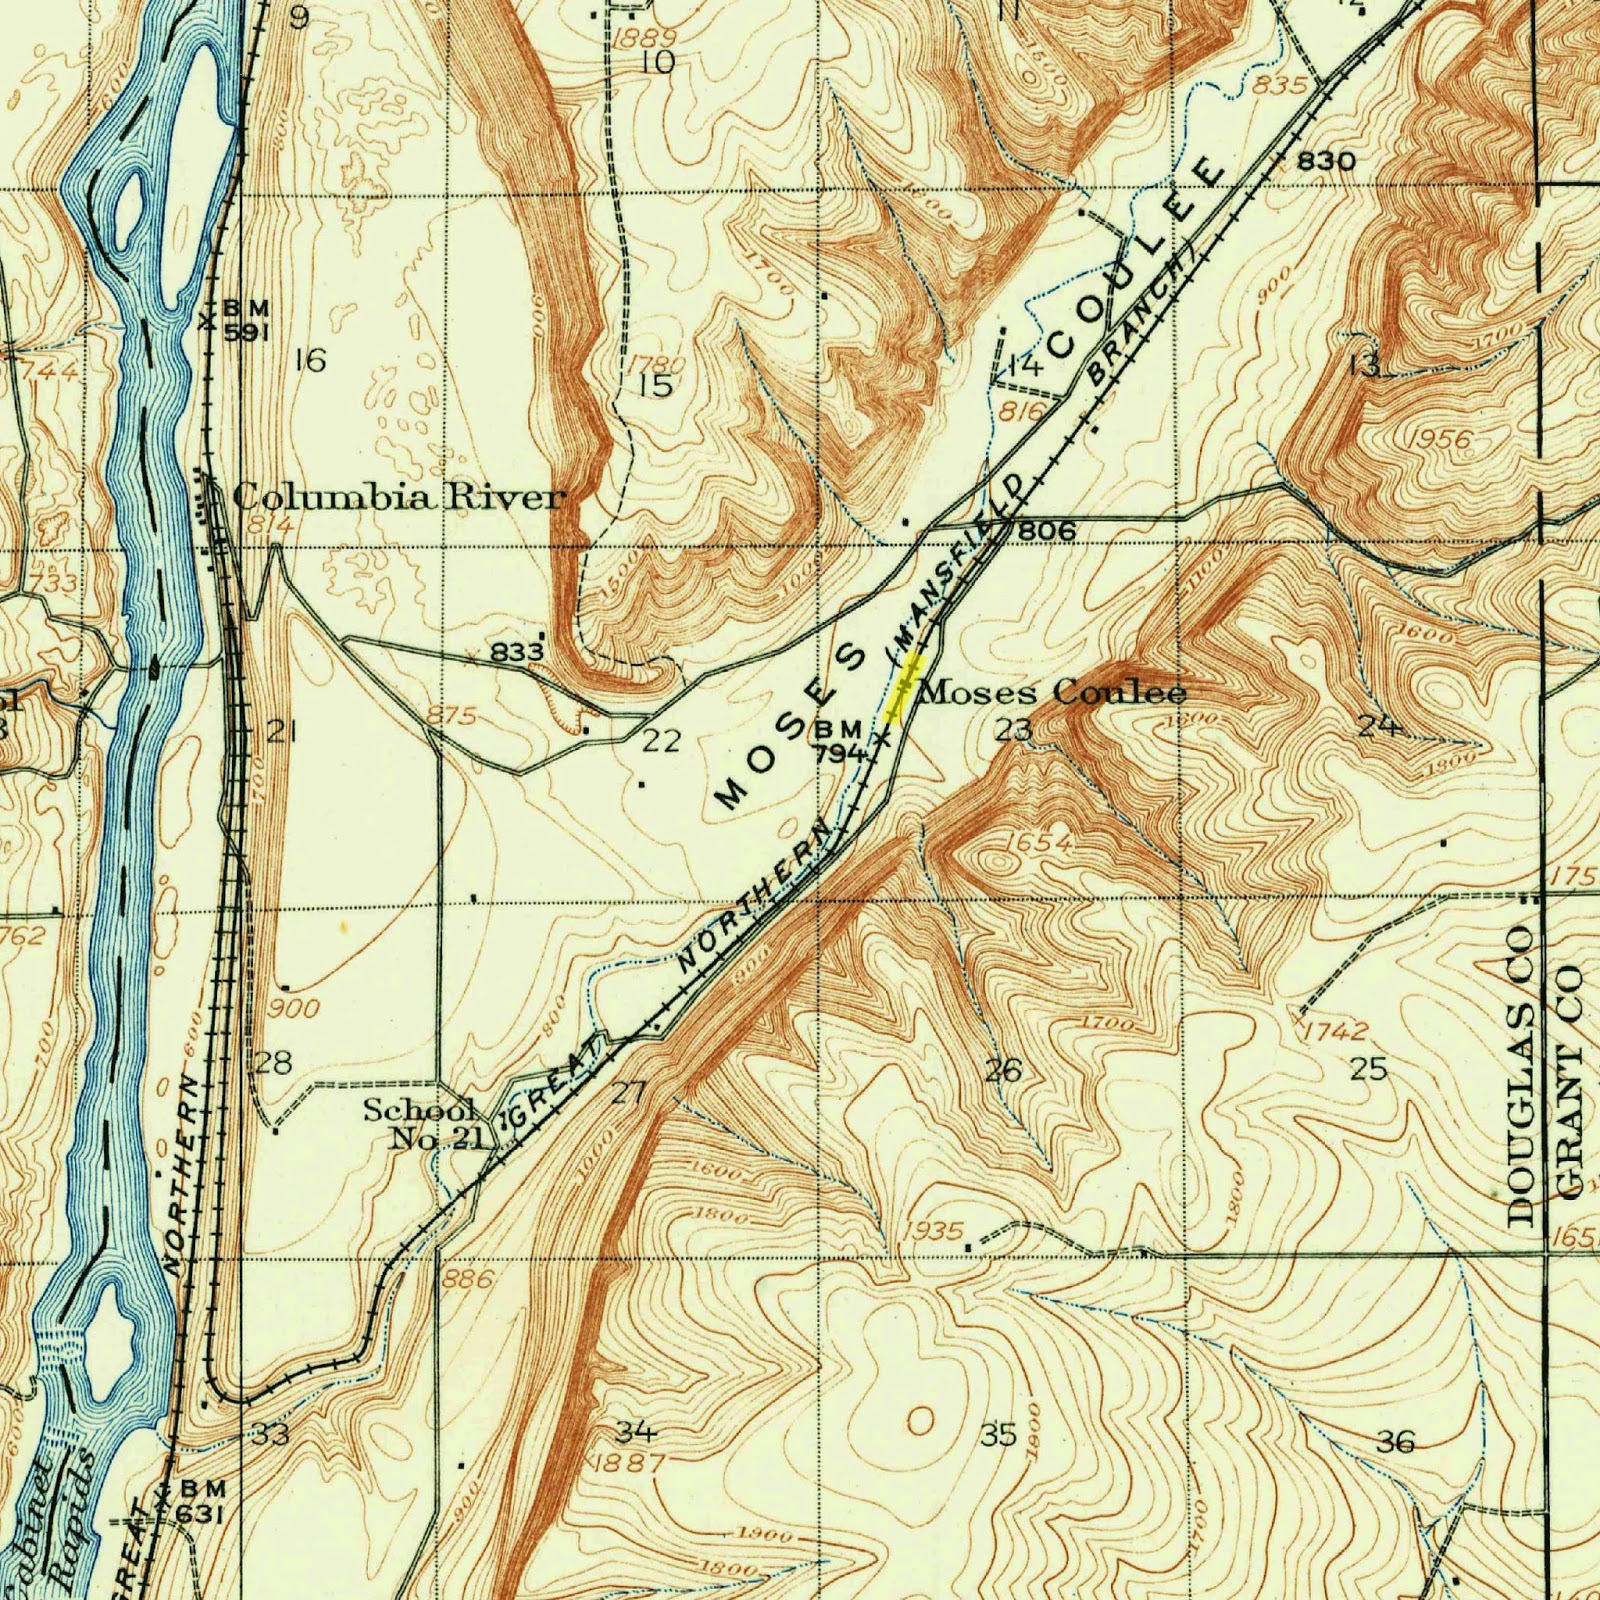 1912 moses coulee map